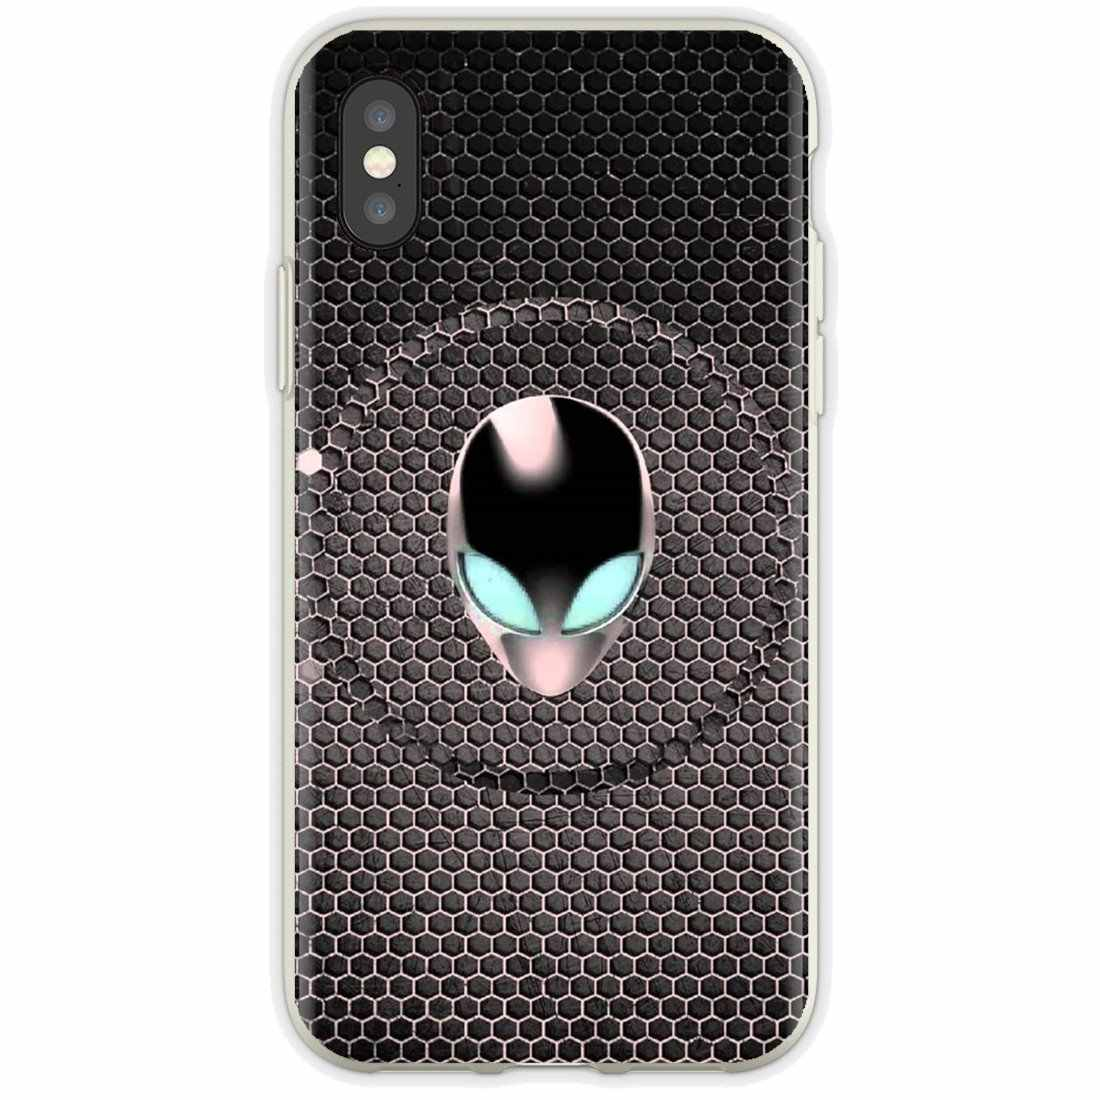 HD Alienware 壁紙サムスンギャラクシー A10 A30 A40 A50 A60 A70 S6 アクティブ注 10 プラスエッジ M30 クラシックシリコーン電話ケース